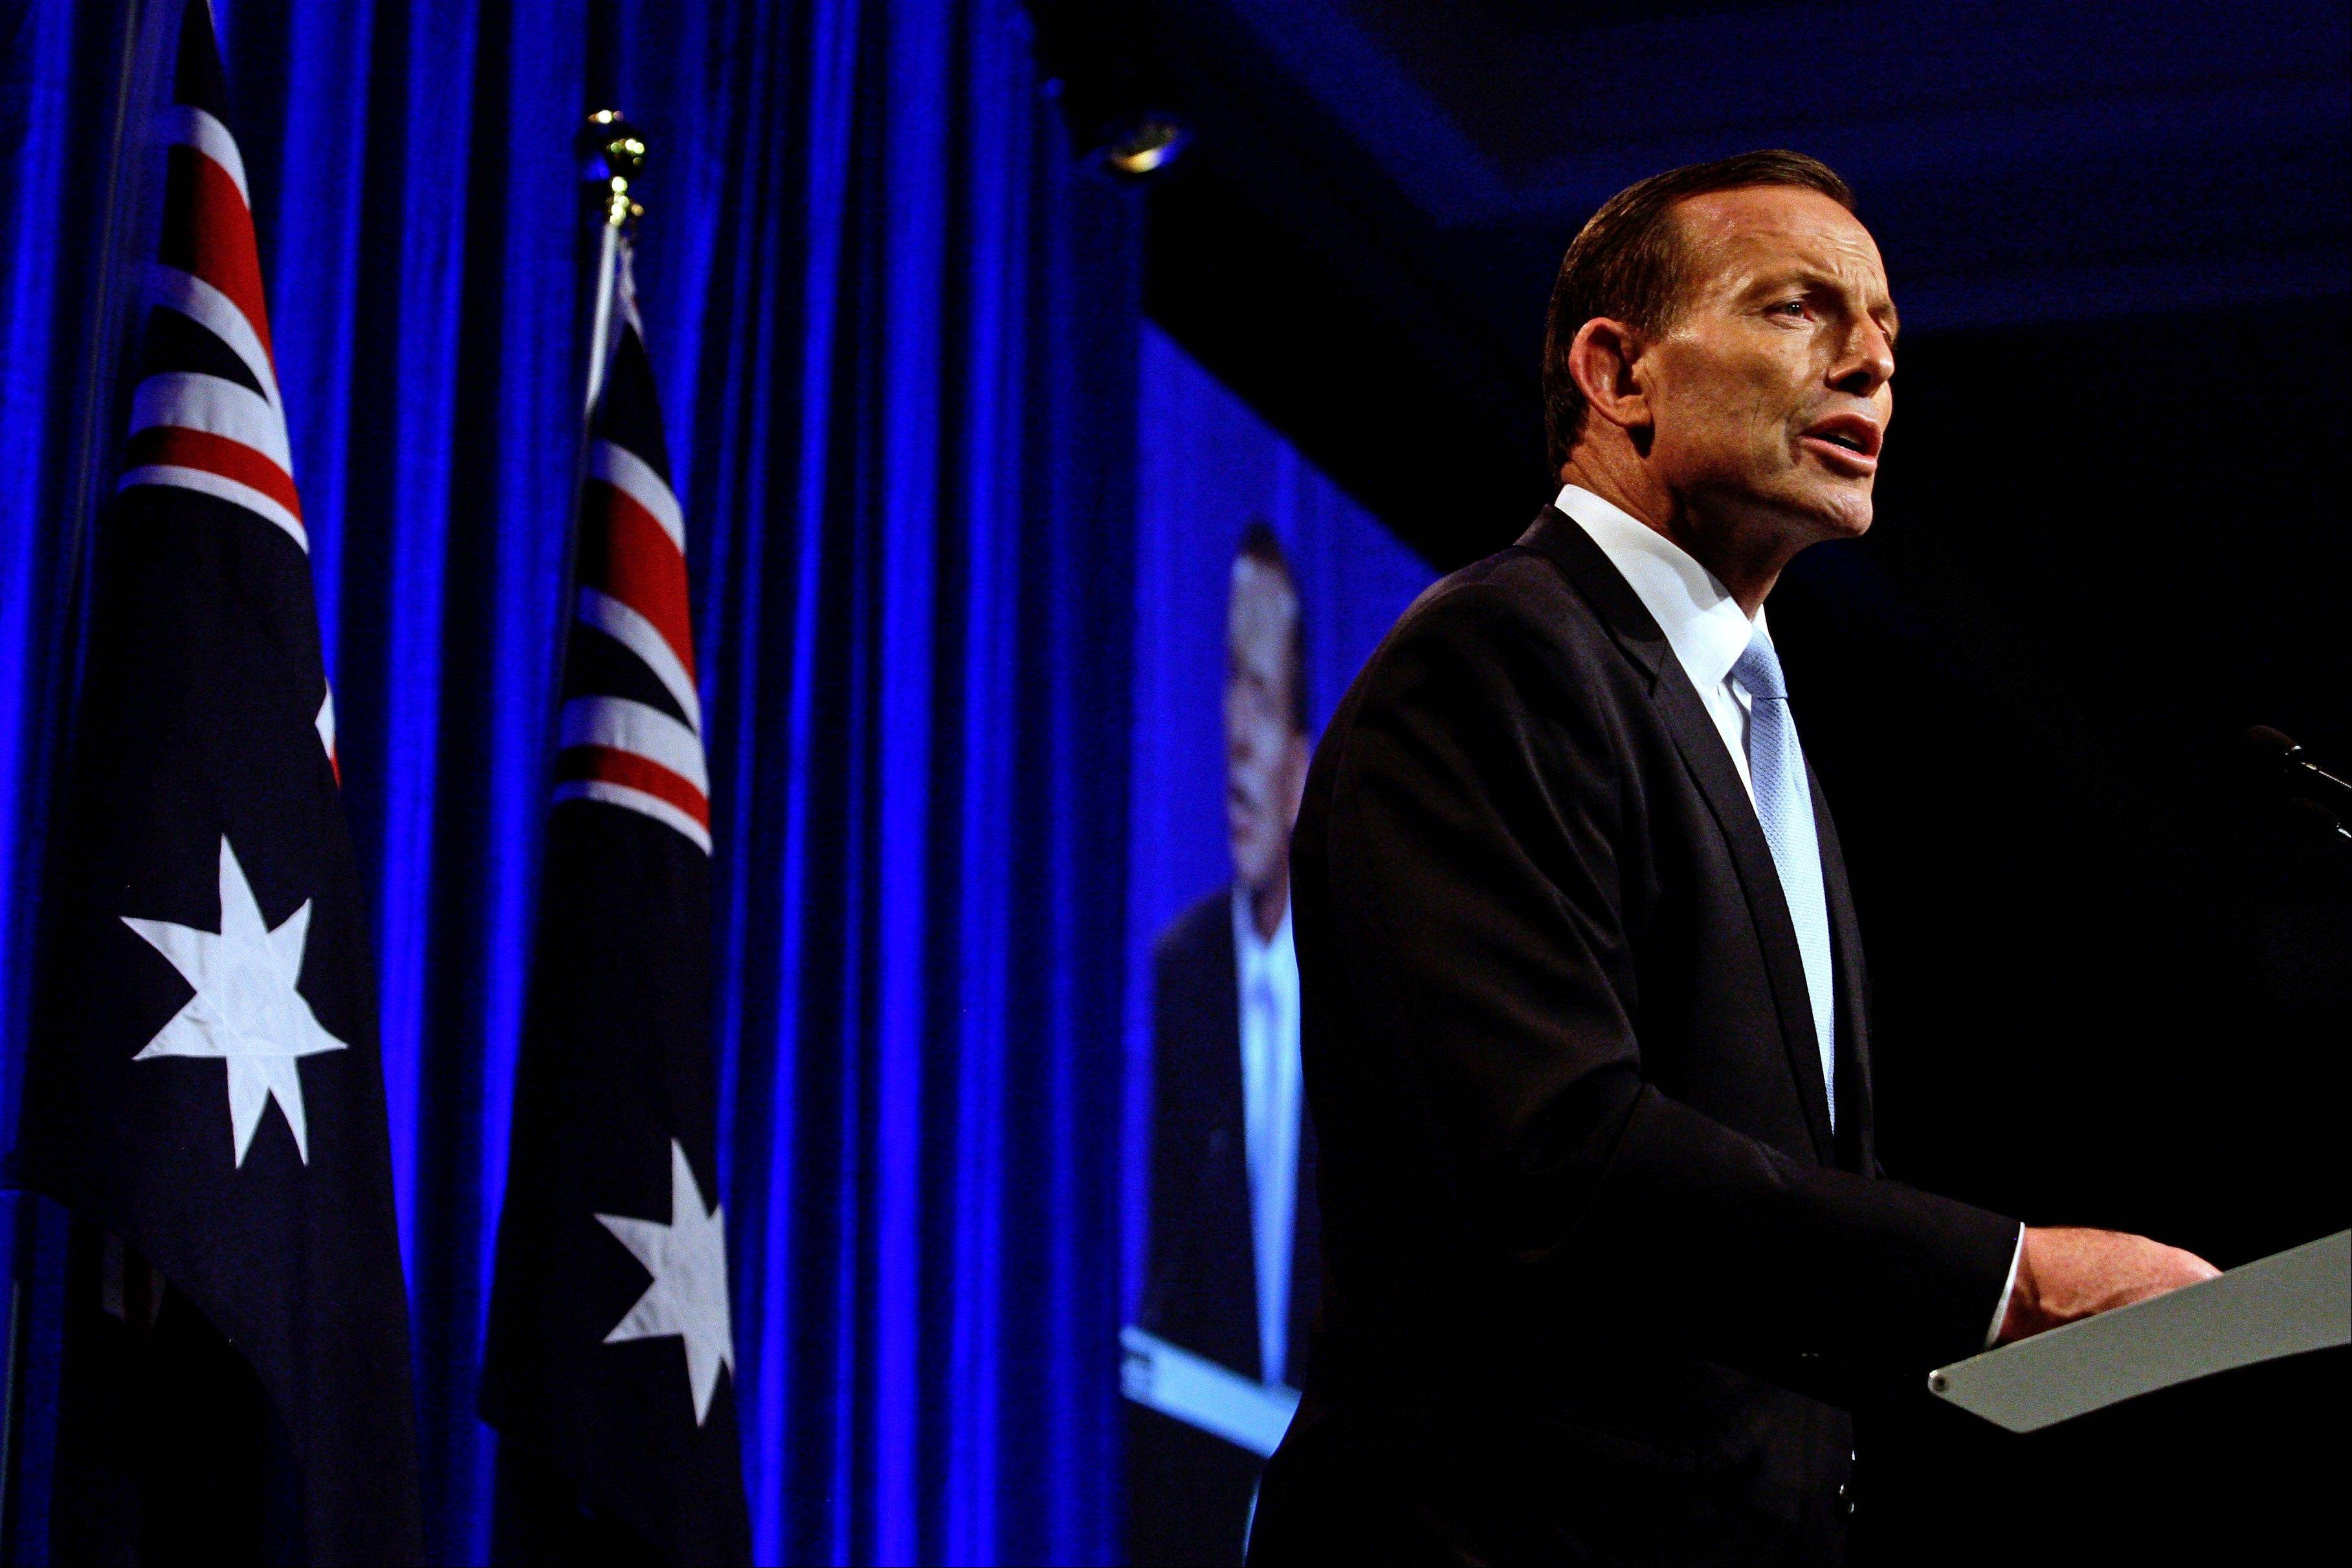 Australian opposition leader Tony Abbott speaks to supporters Saturday in Sydney following his win in Australia's national election.